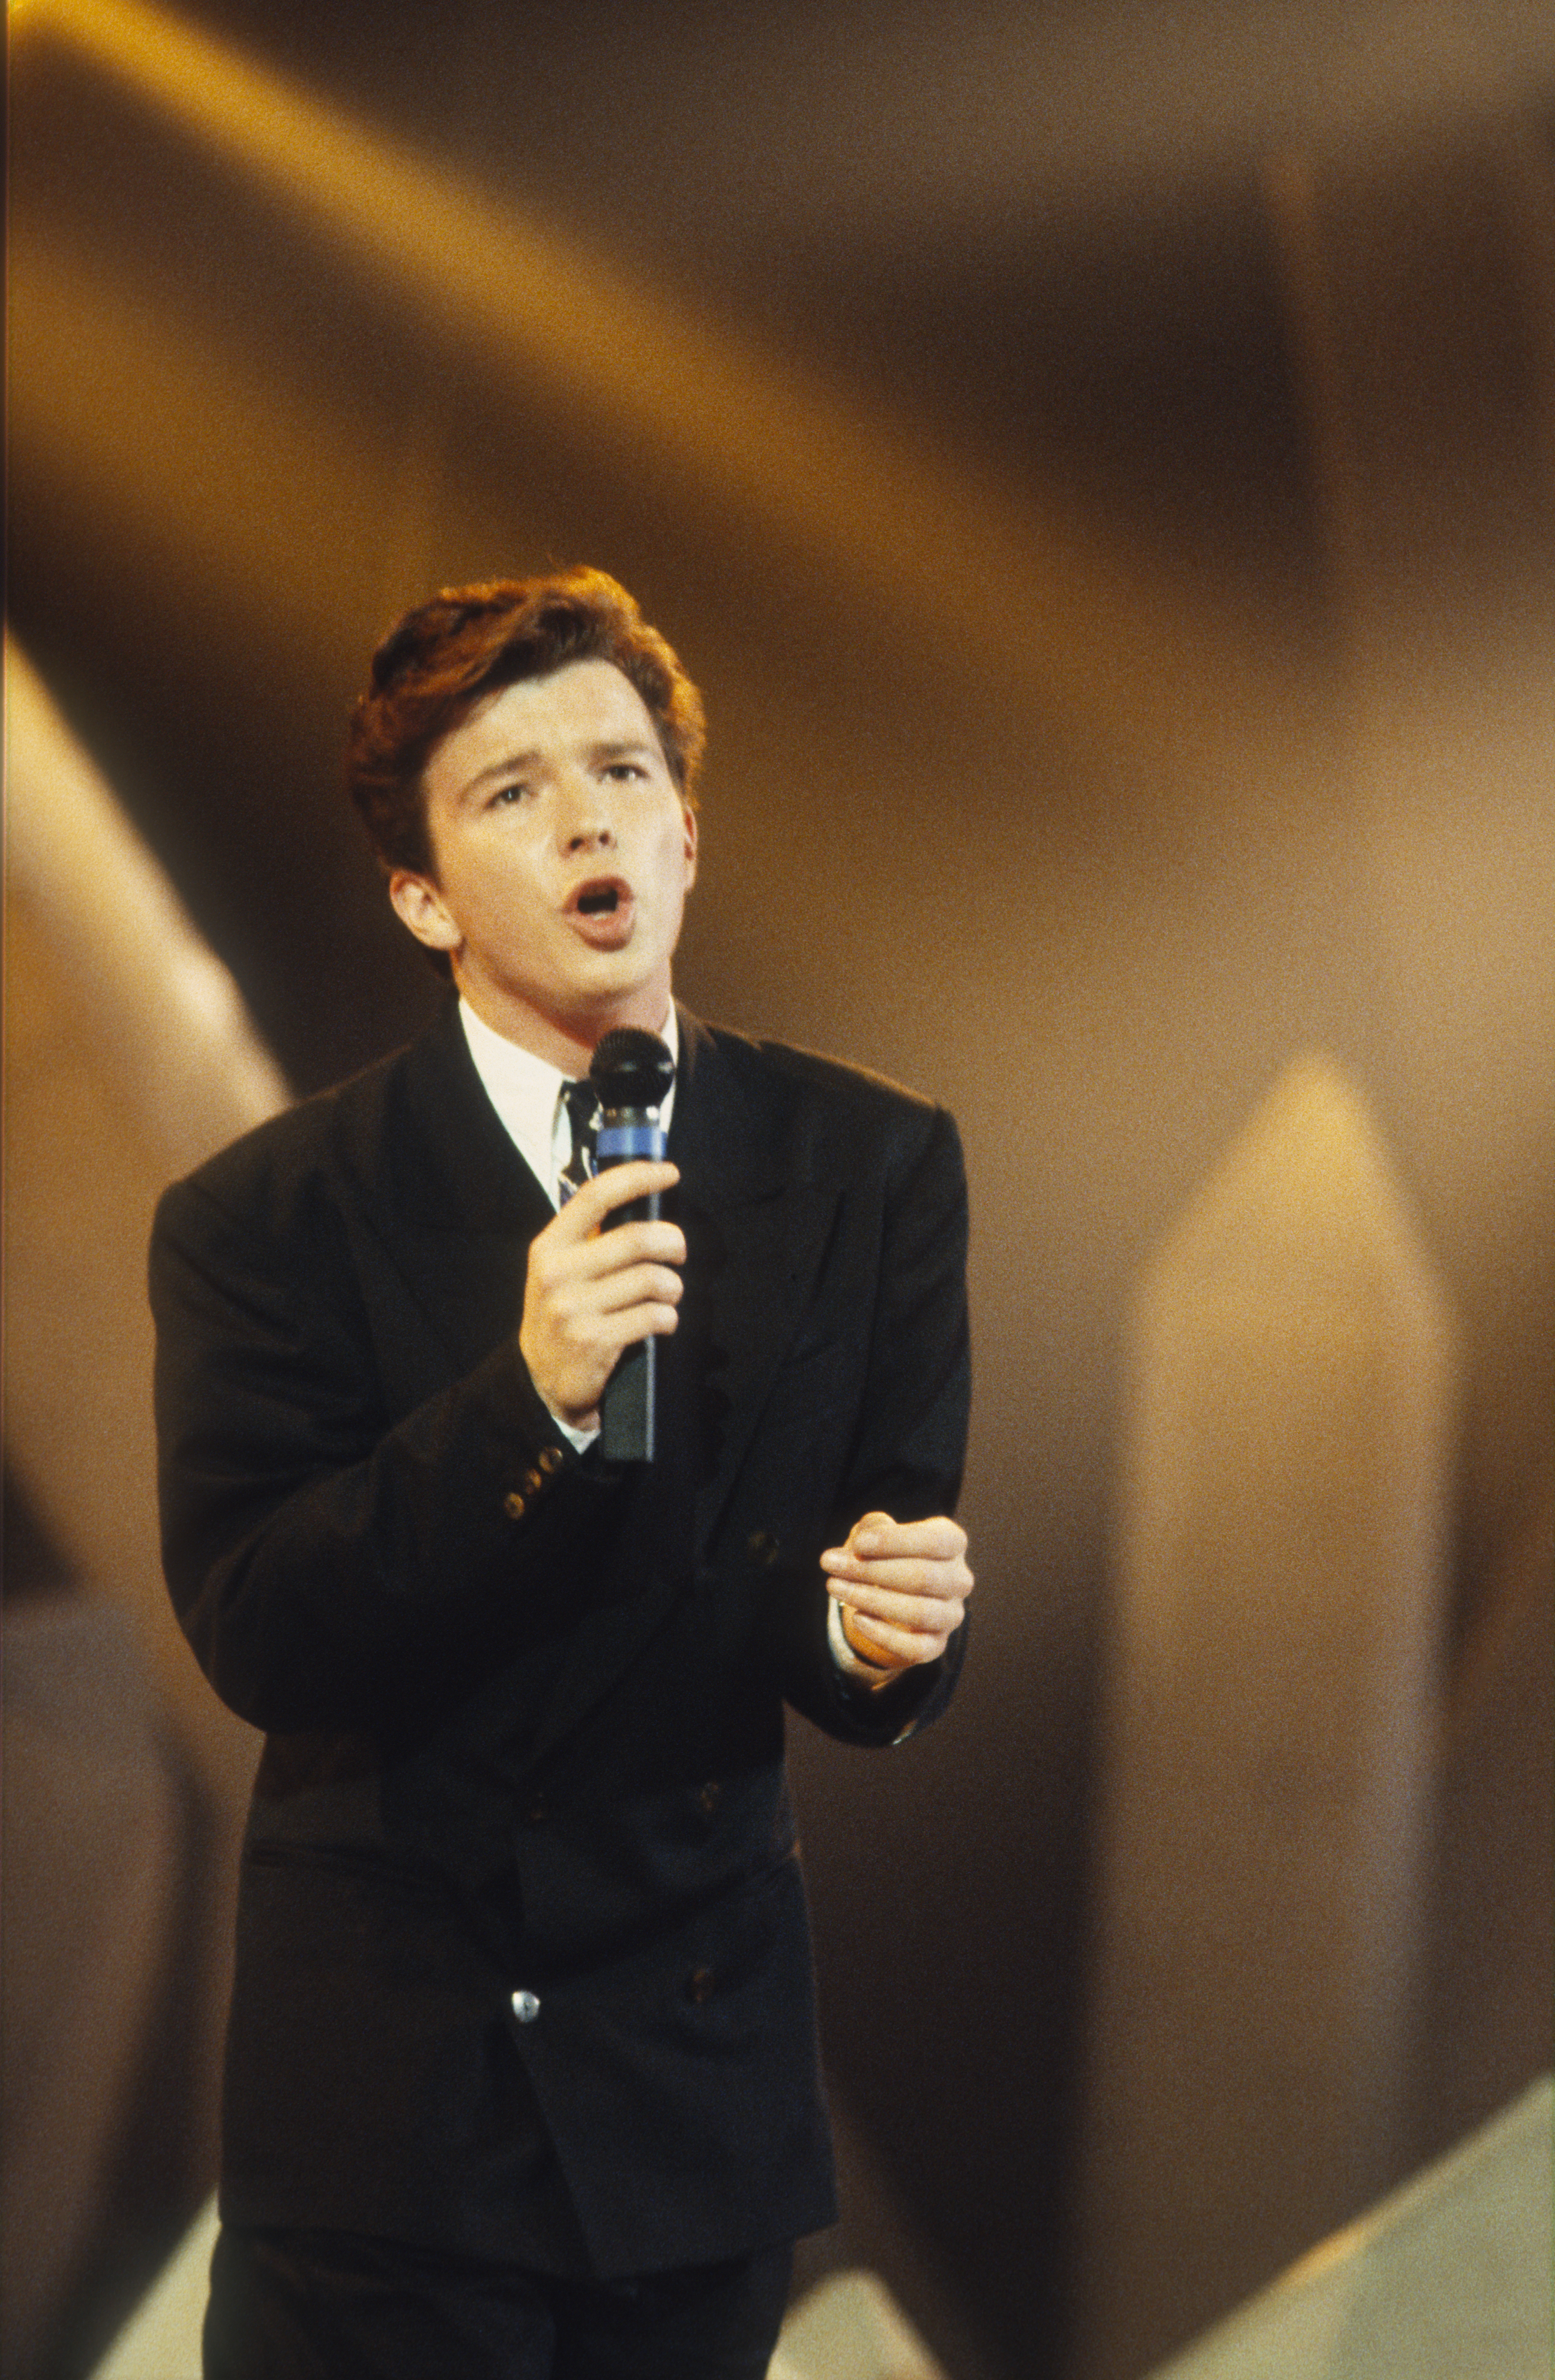 Rick Astley a 80-as években / Fotó: Getty Images